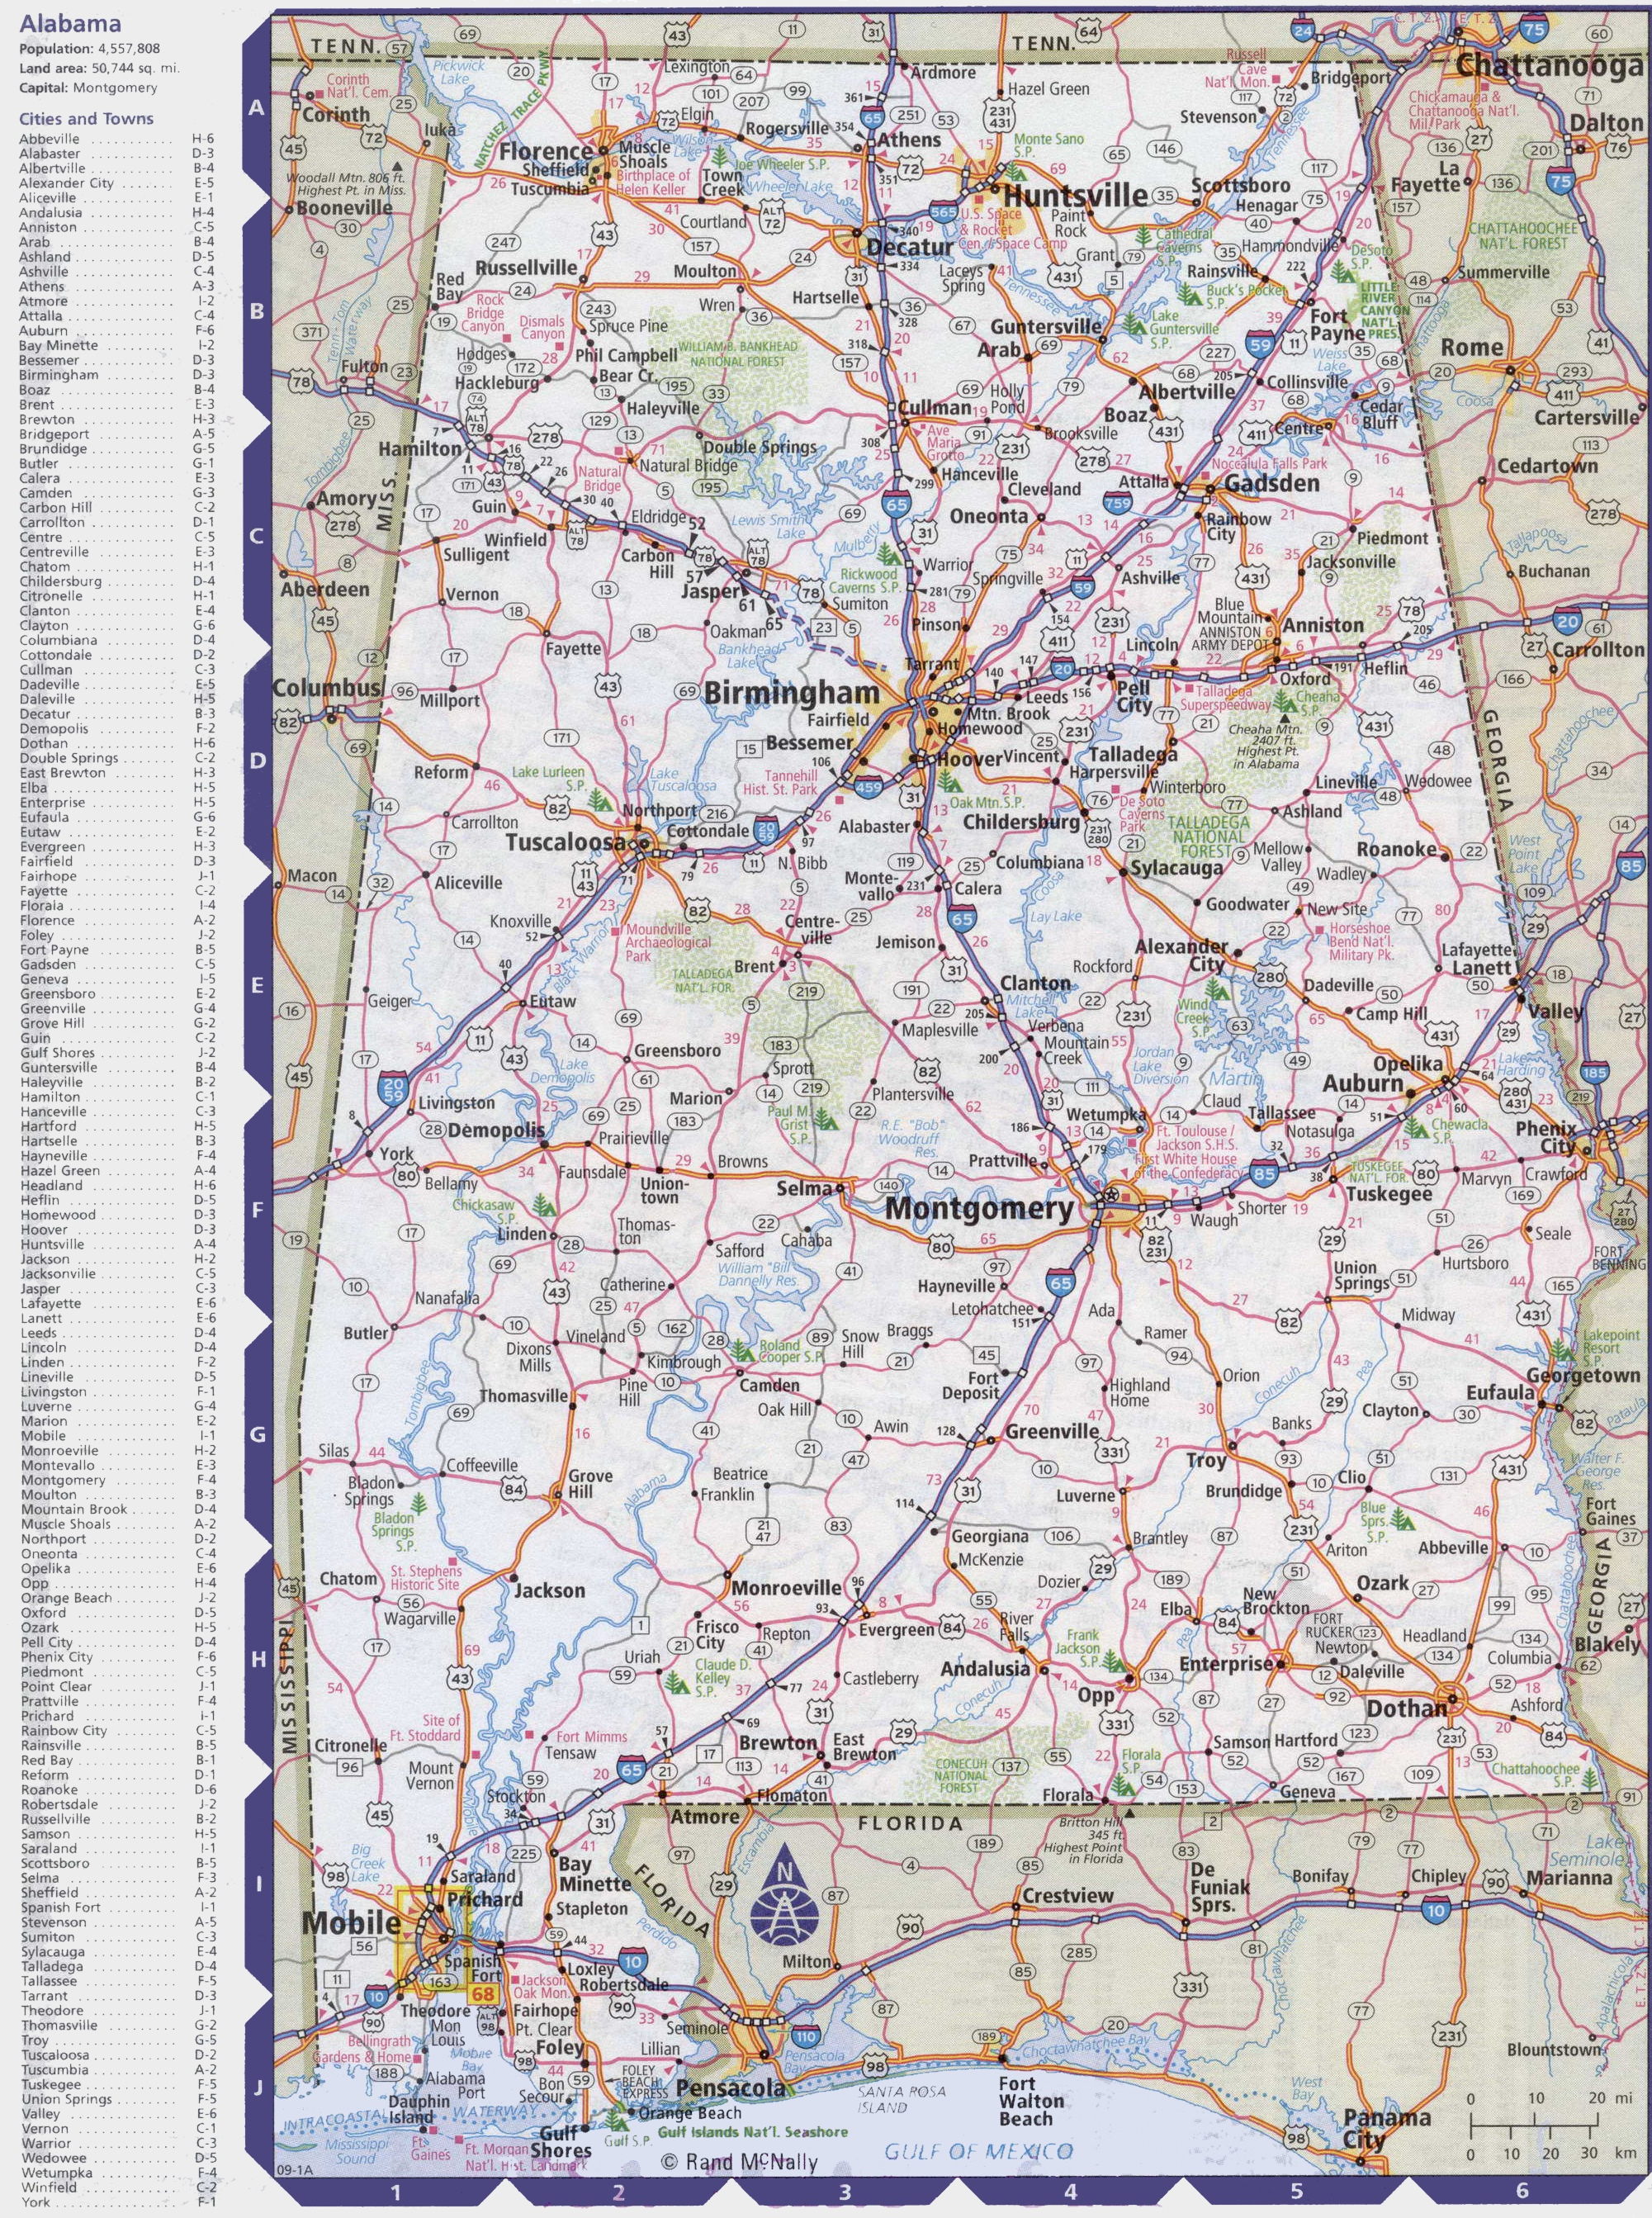 Map Of Alabama With Cities And Towns - Maps of alabama